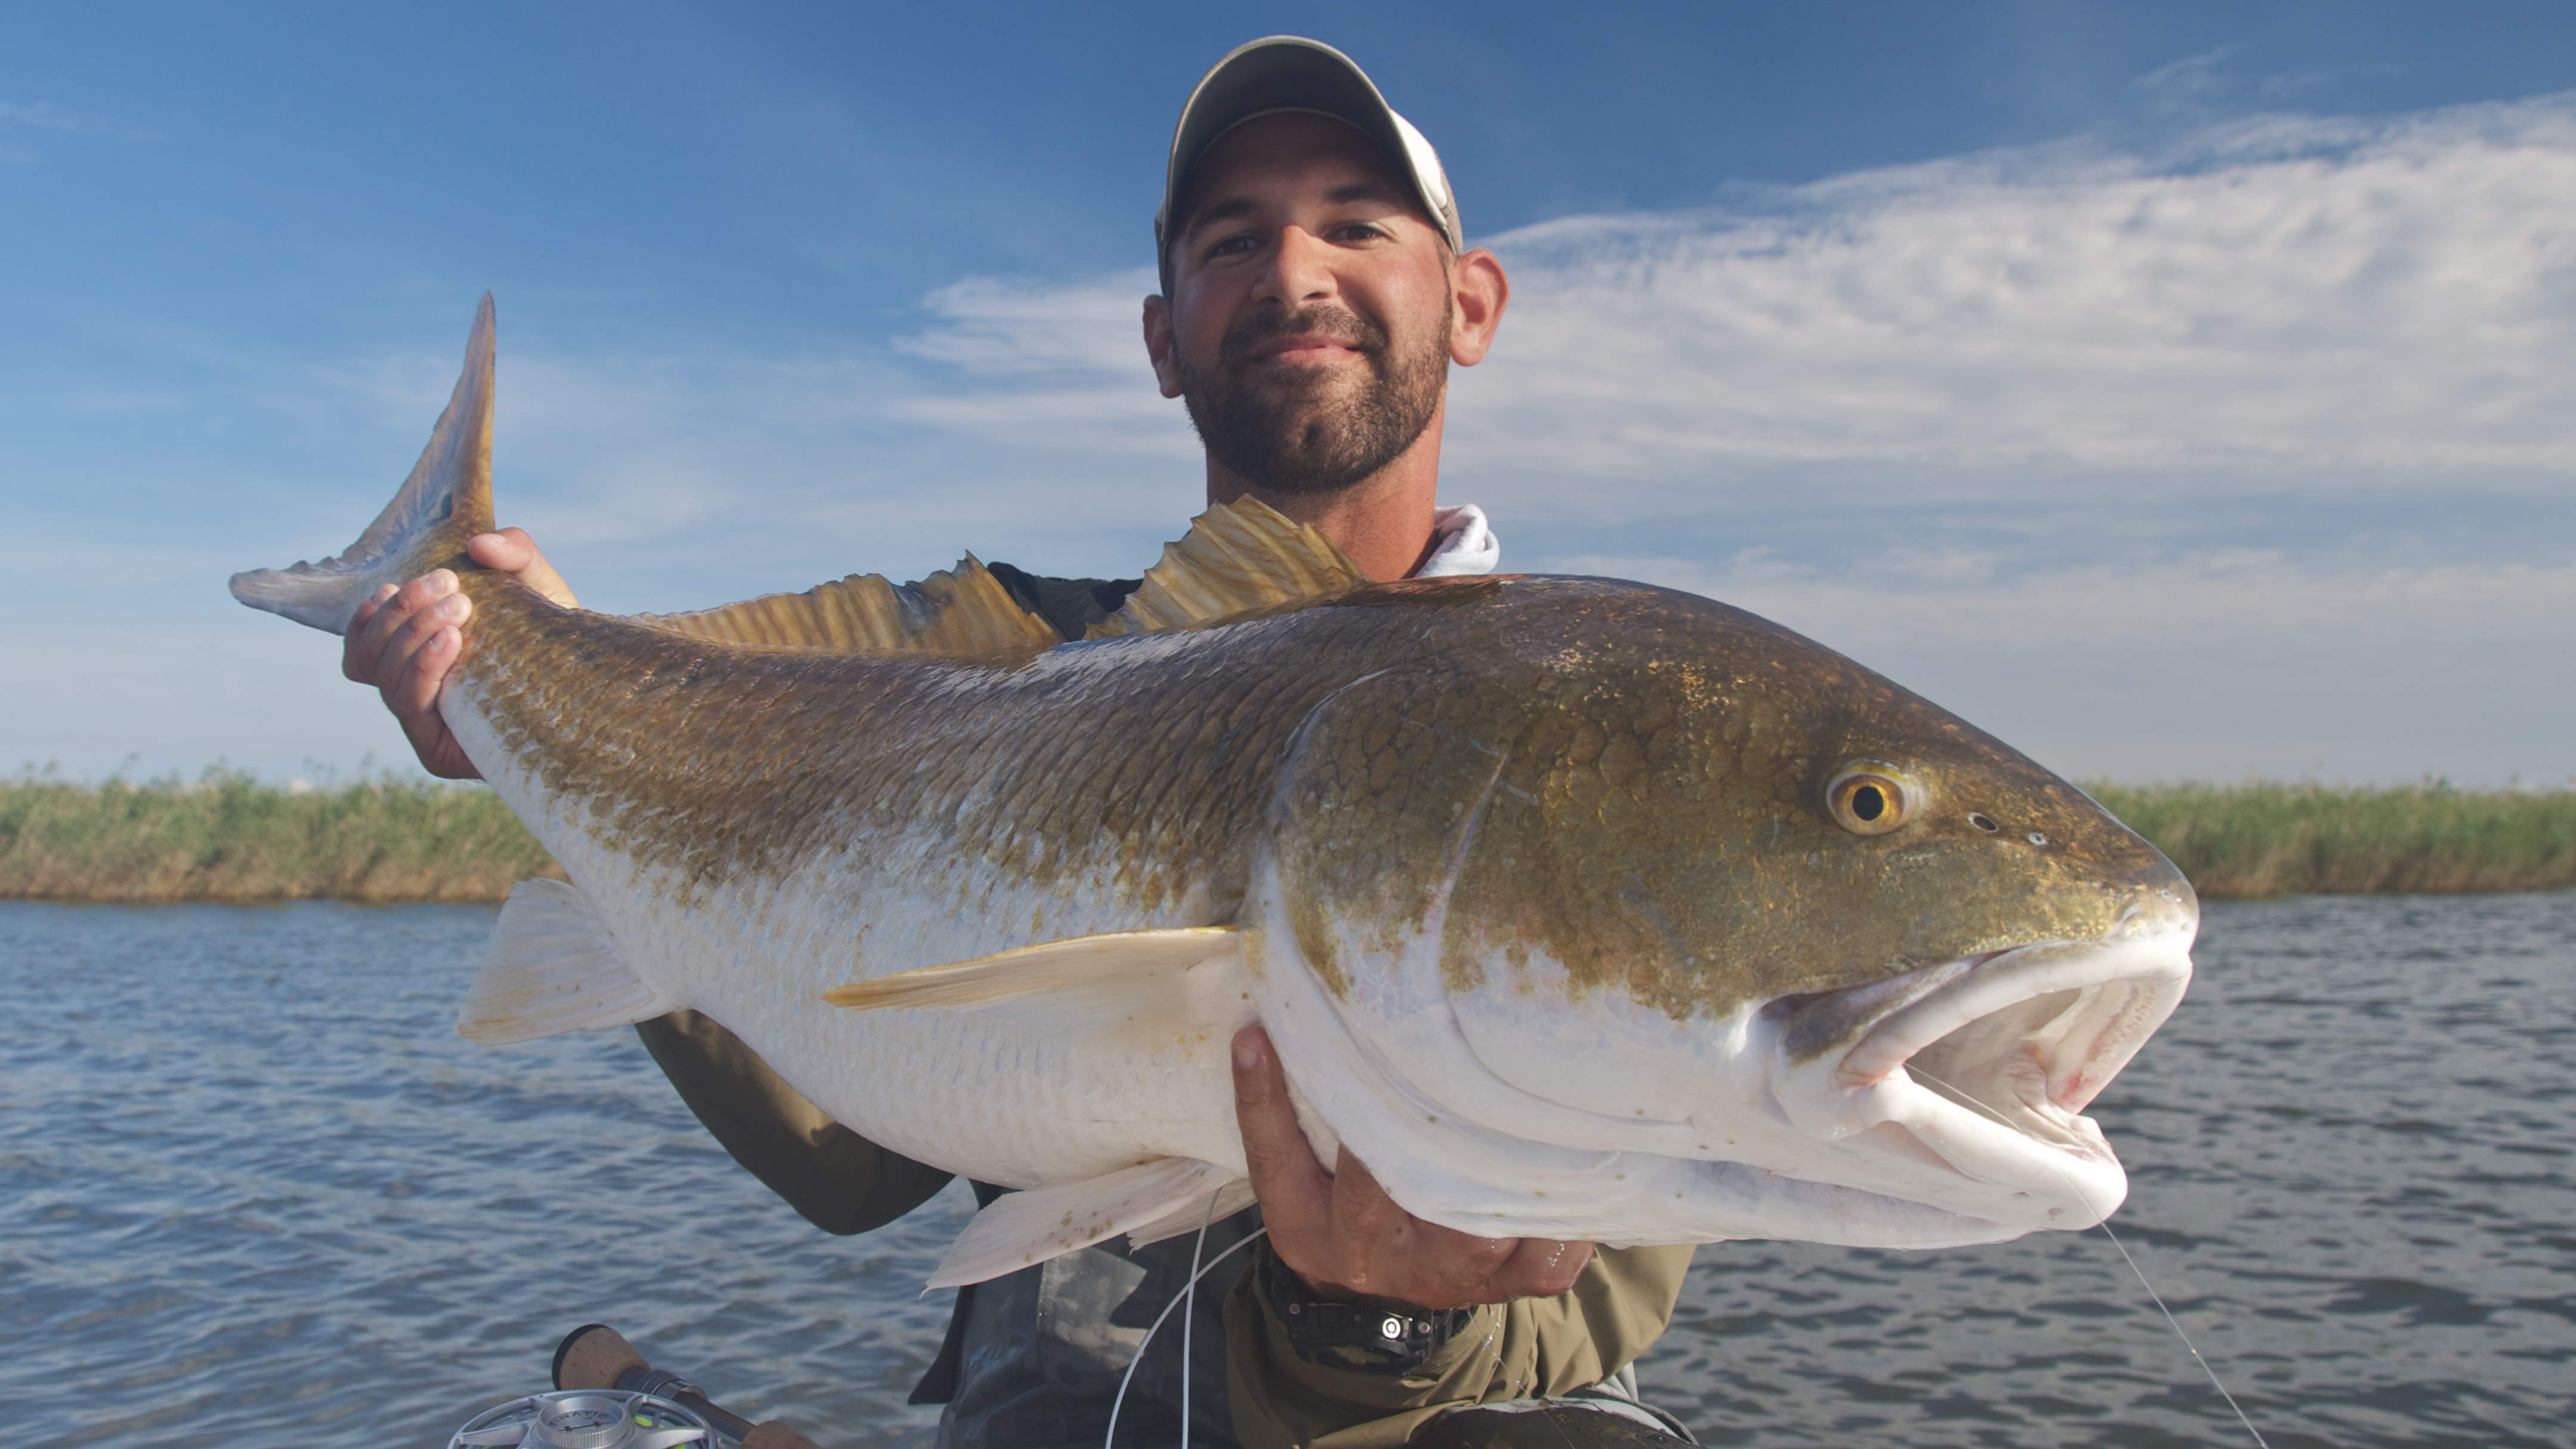 Big fish season is in full swing shallow south for Red fish season